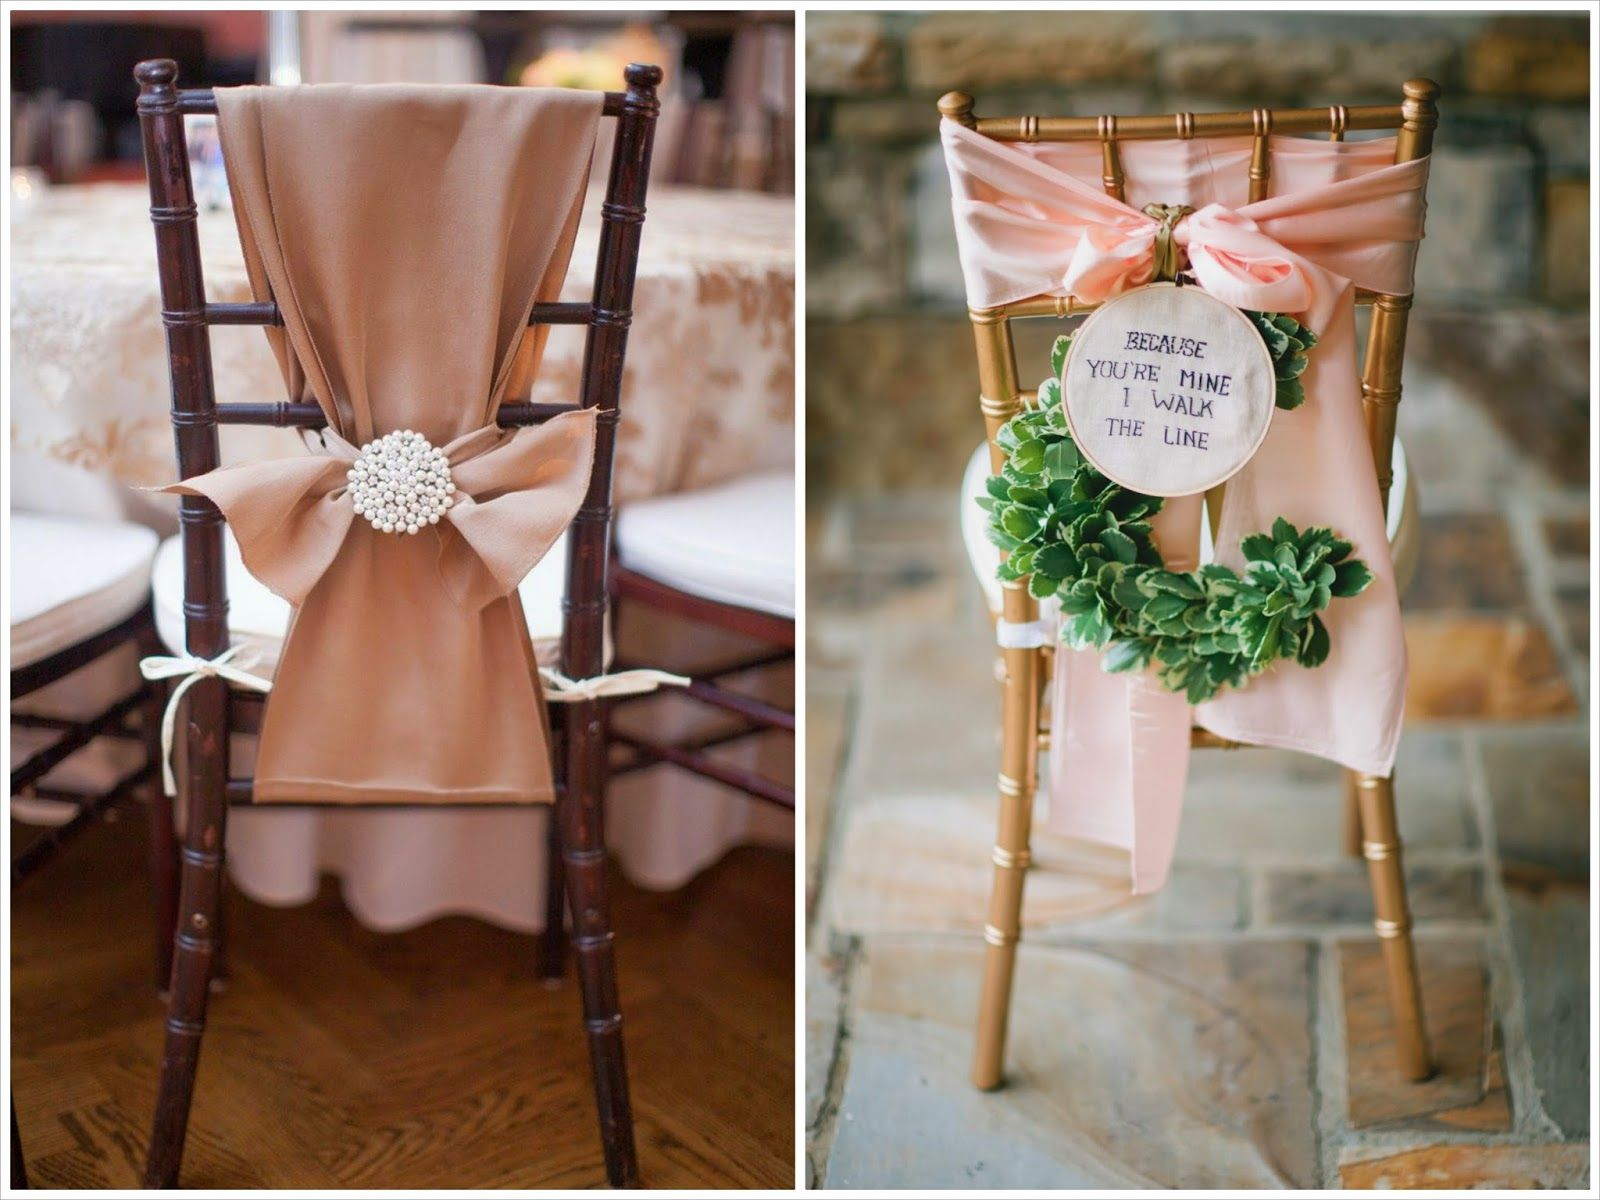 Sillas decoradas con telas boda pinterest sillas boda ideas y sillas decoradas - Sillas para bodas ...